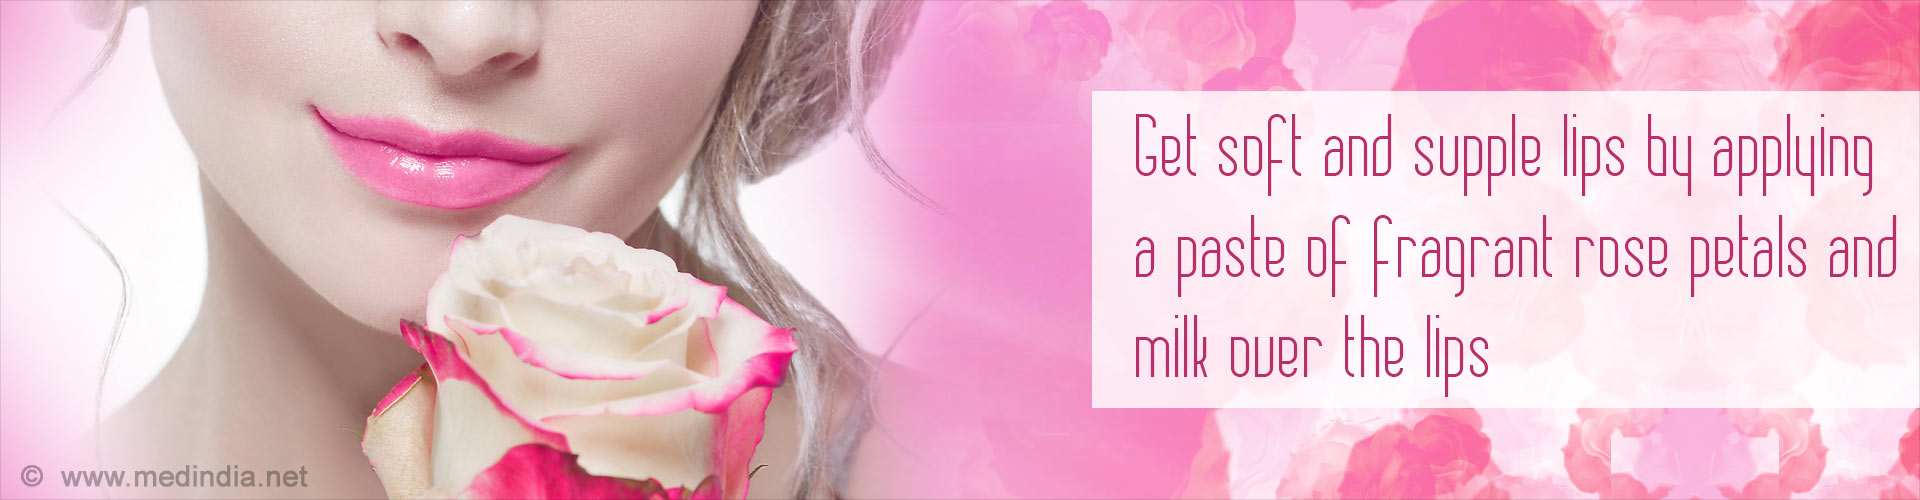 Get soft and supple lips by applying a paste of fragrant rose petals and milk over the lips.